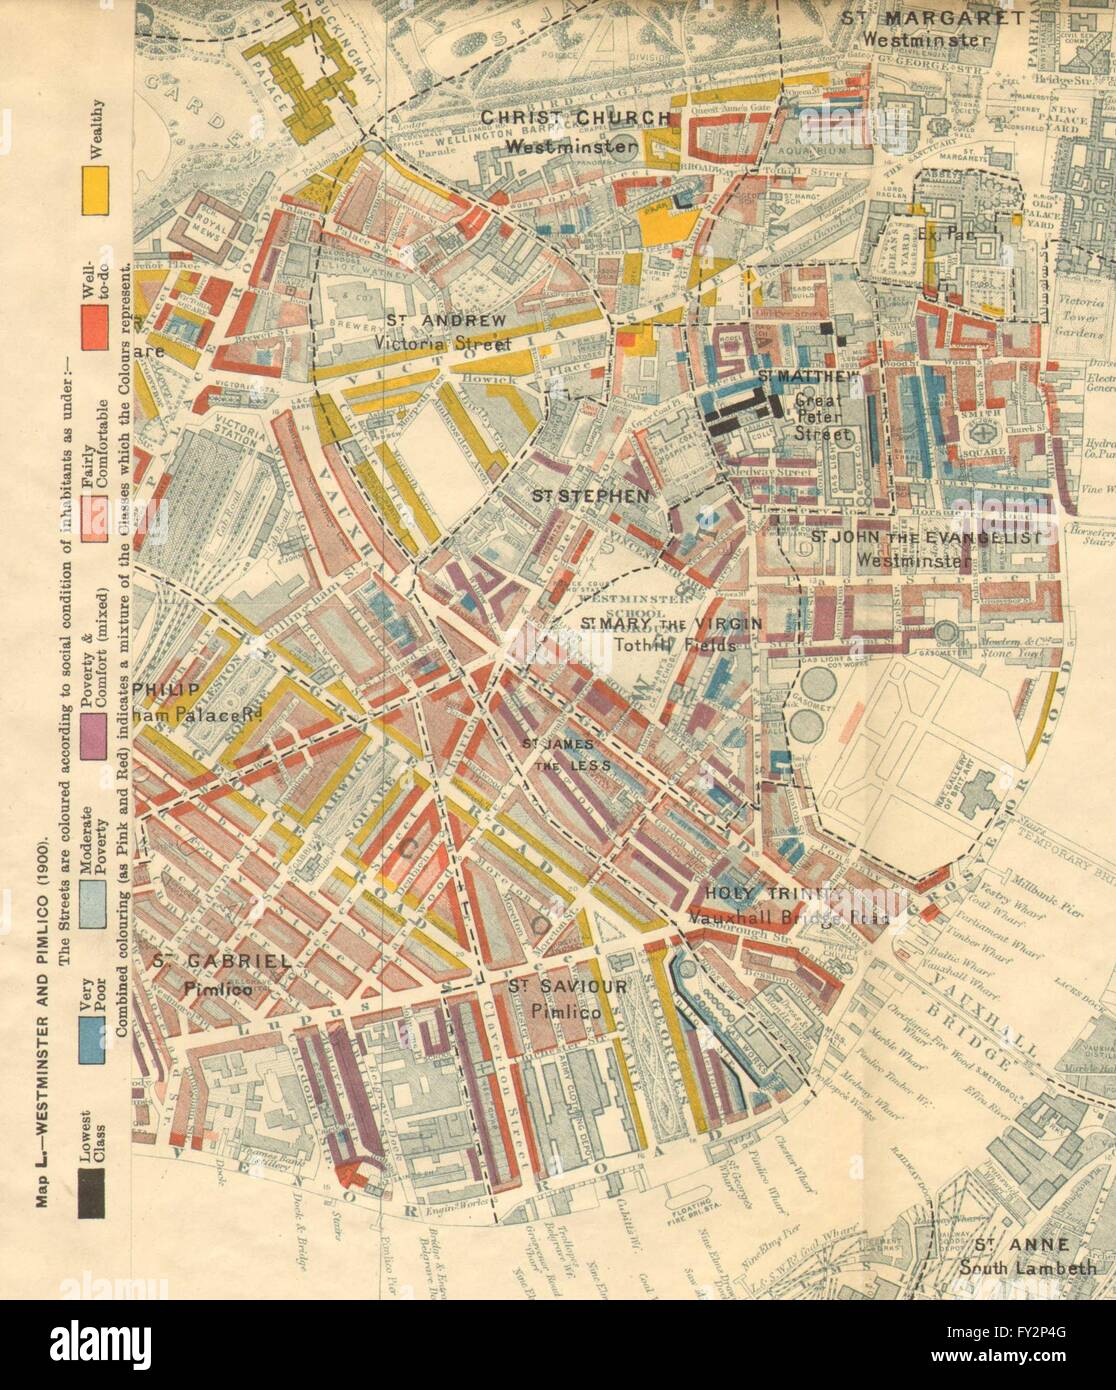 CHARLES BOOTH POVERTY MAP Westminster Pimlico Victoria - Westminster map